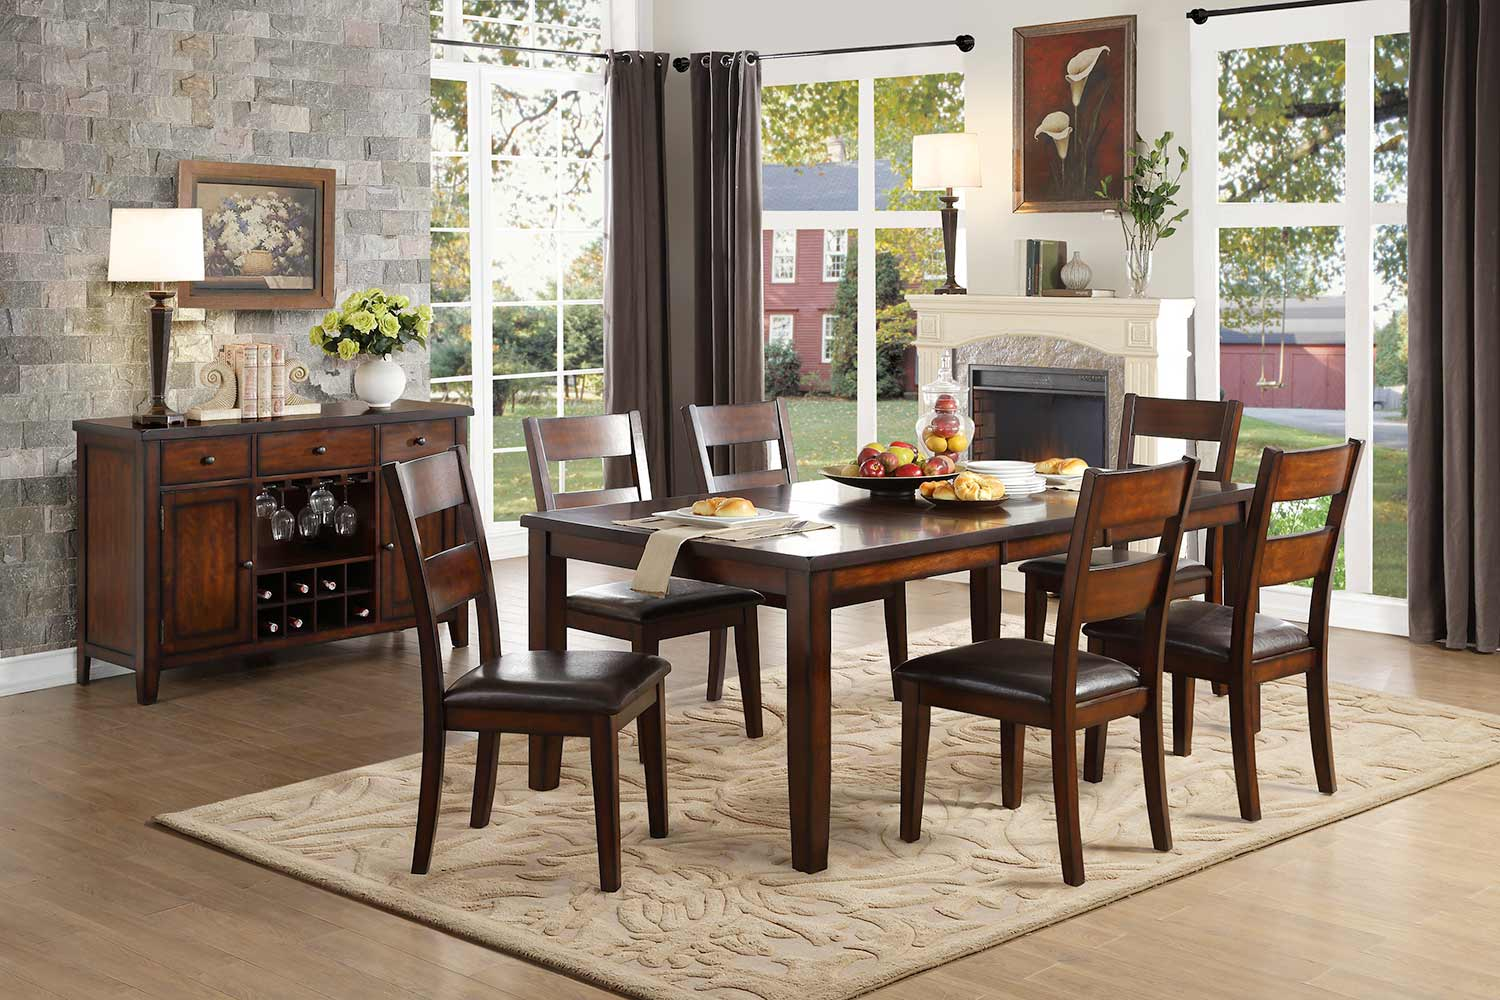 Homelegance Mantello Dining Set - Cherry - Dark Brown Bi-Cast Vinyl